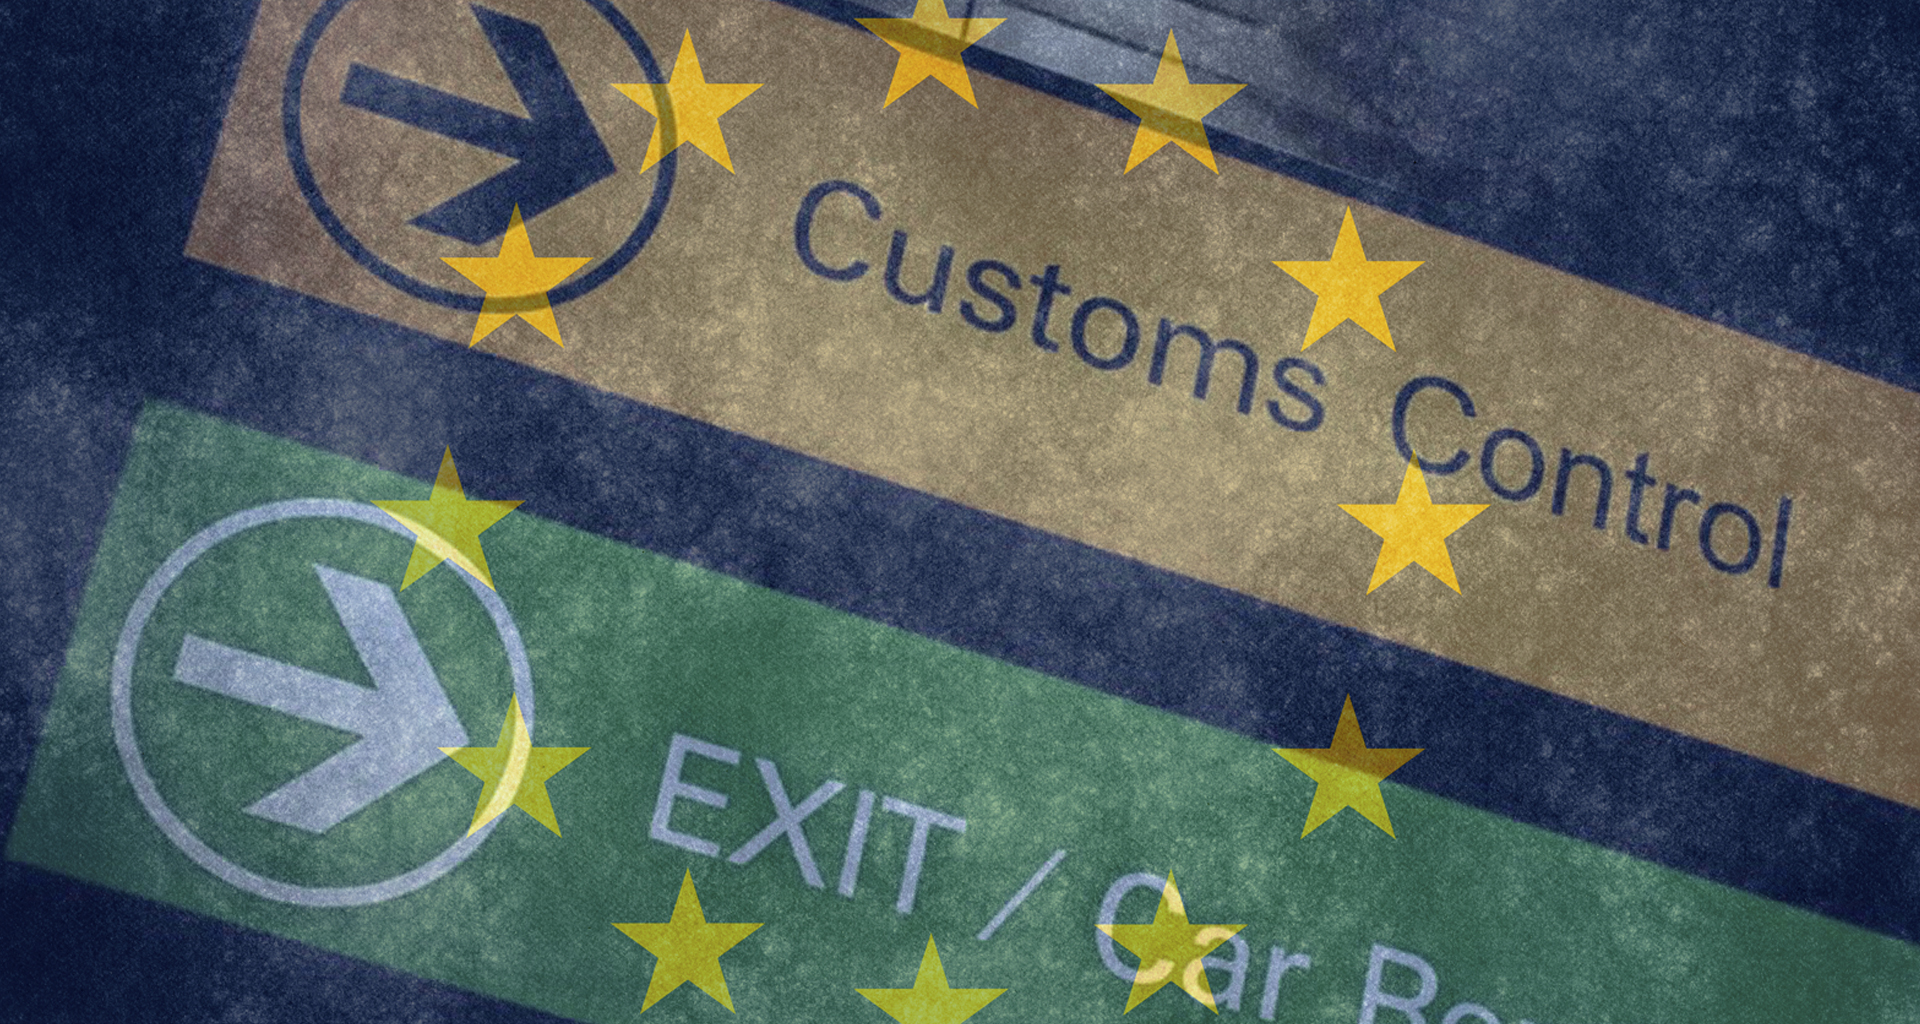 "<a href=""index.php/areas-of-expertise/customs"">EU Customs</a>"